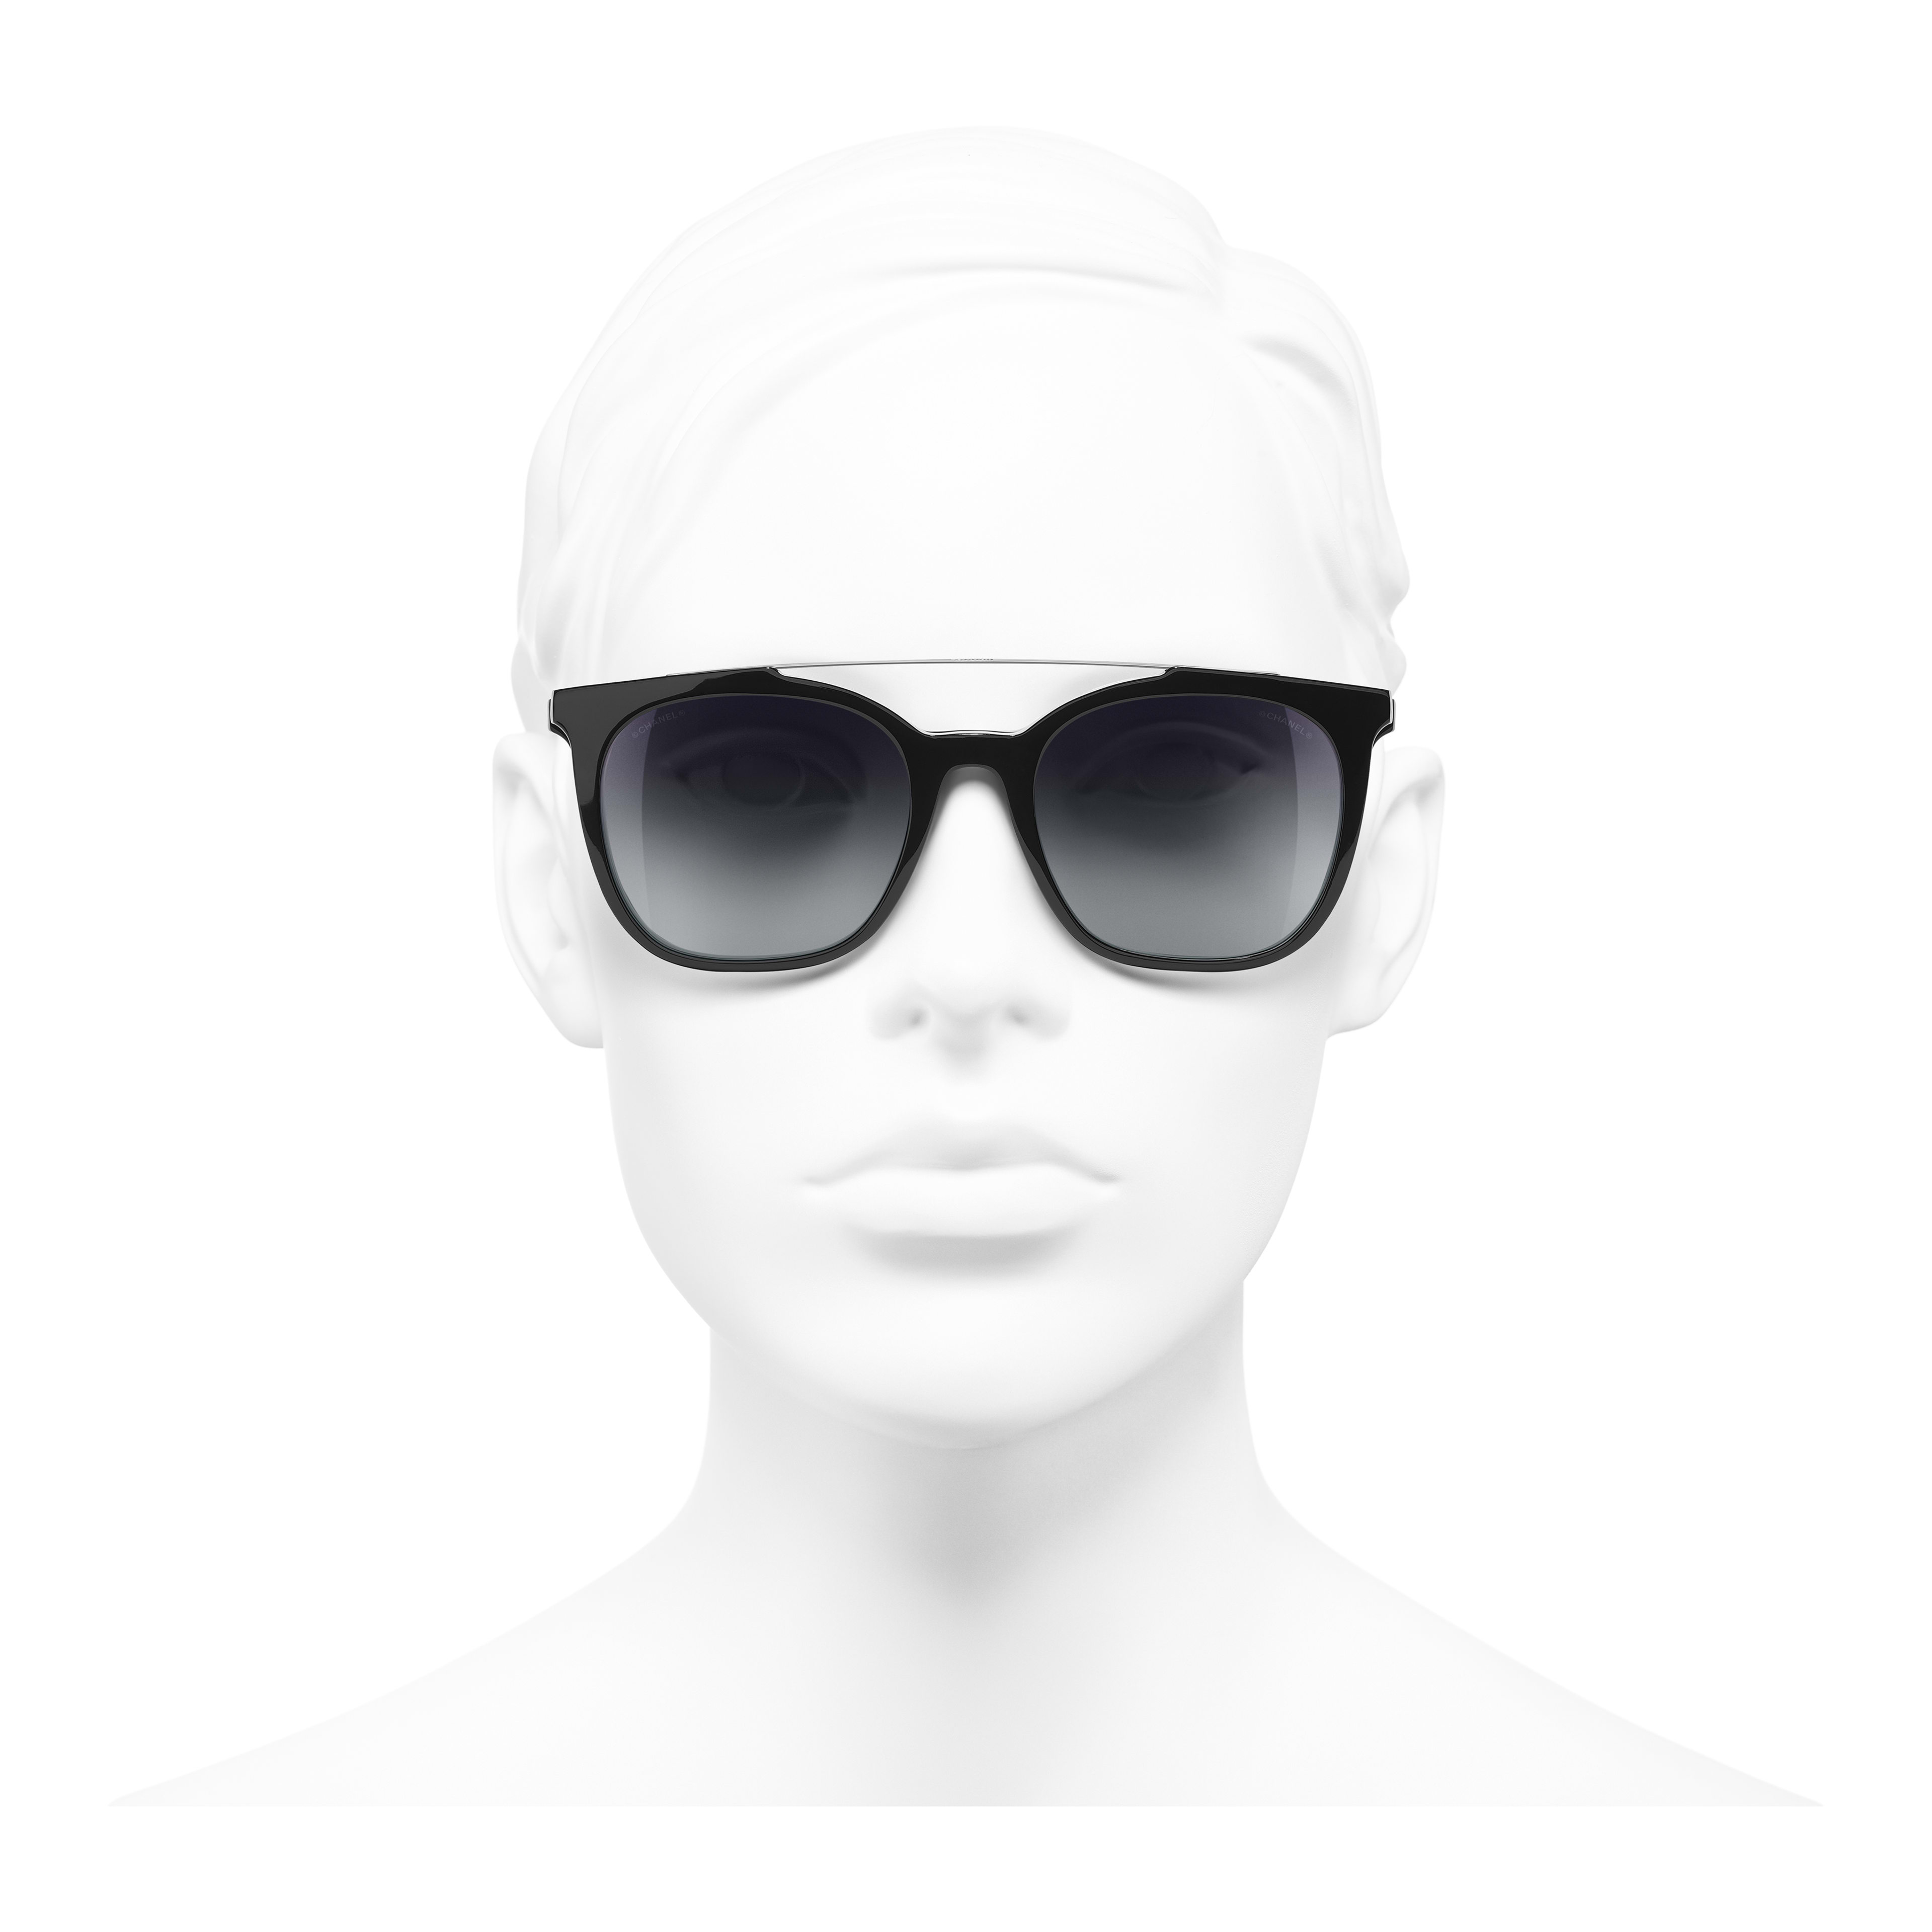 Clip on Sunglasses Acetate & Metal Black -                                                                     view 2 - see full sized version